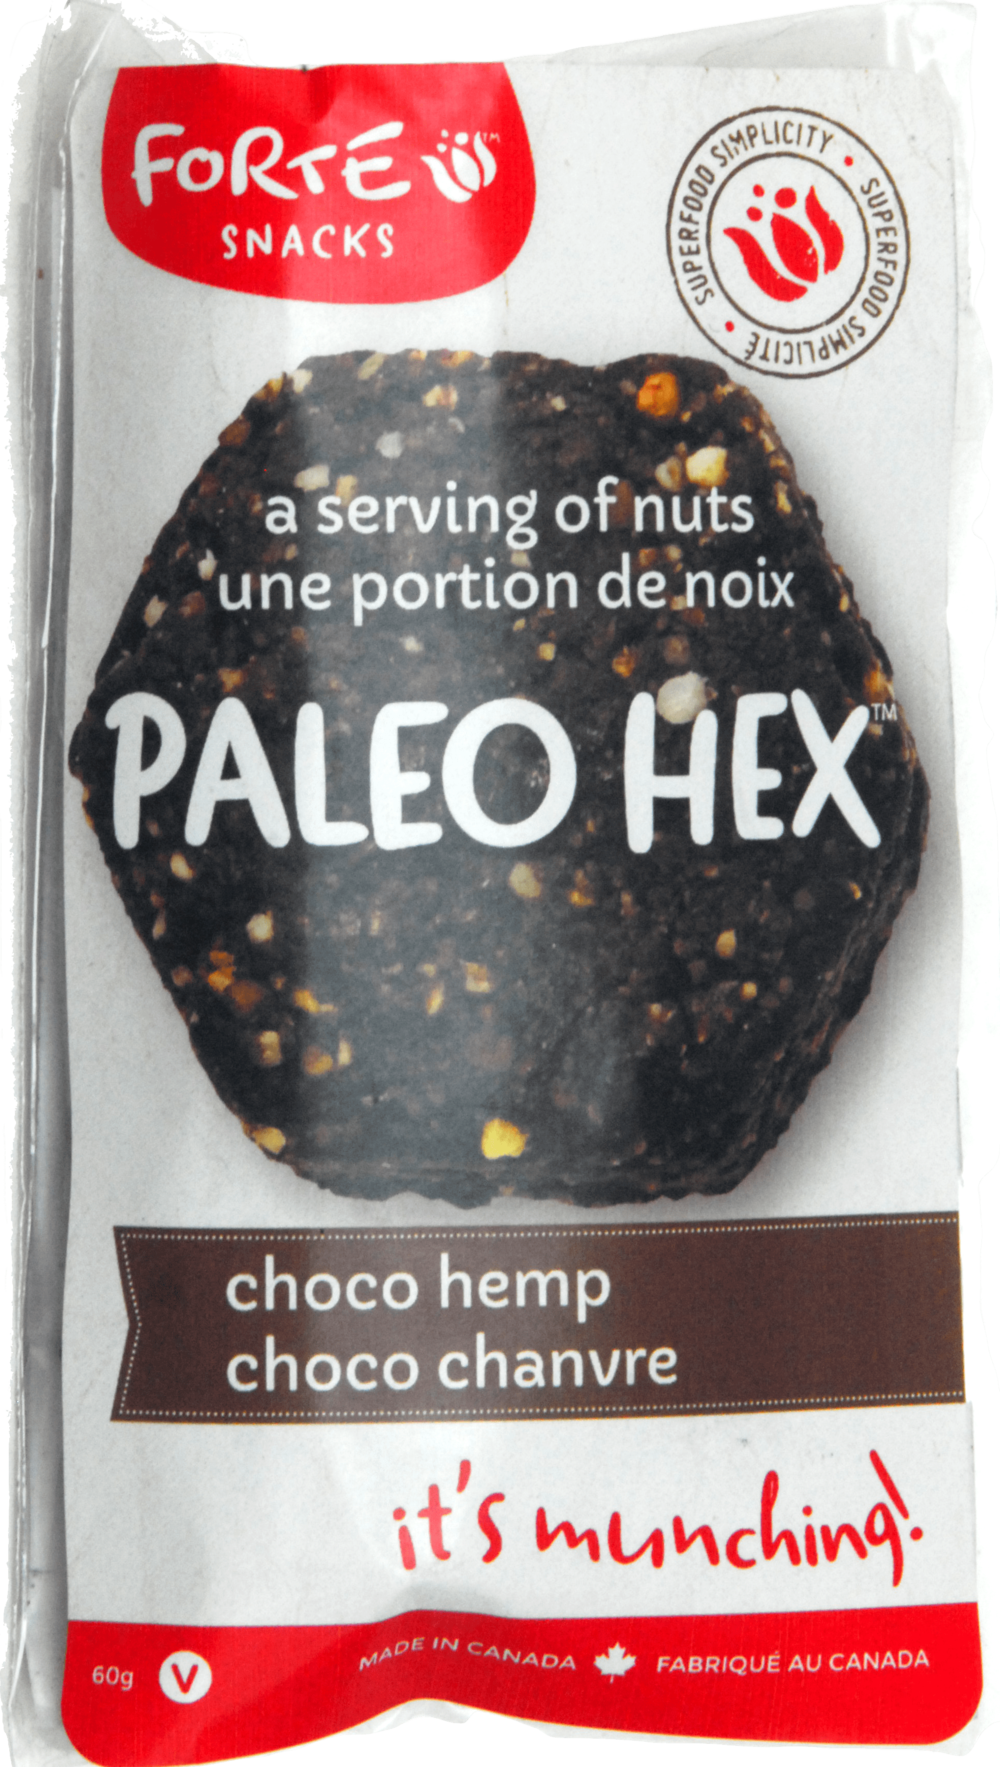 Choc-Hemp snack label